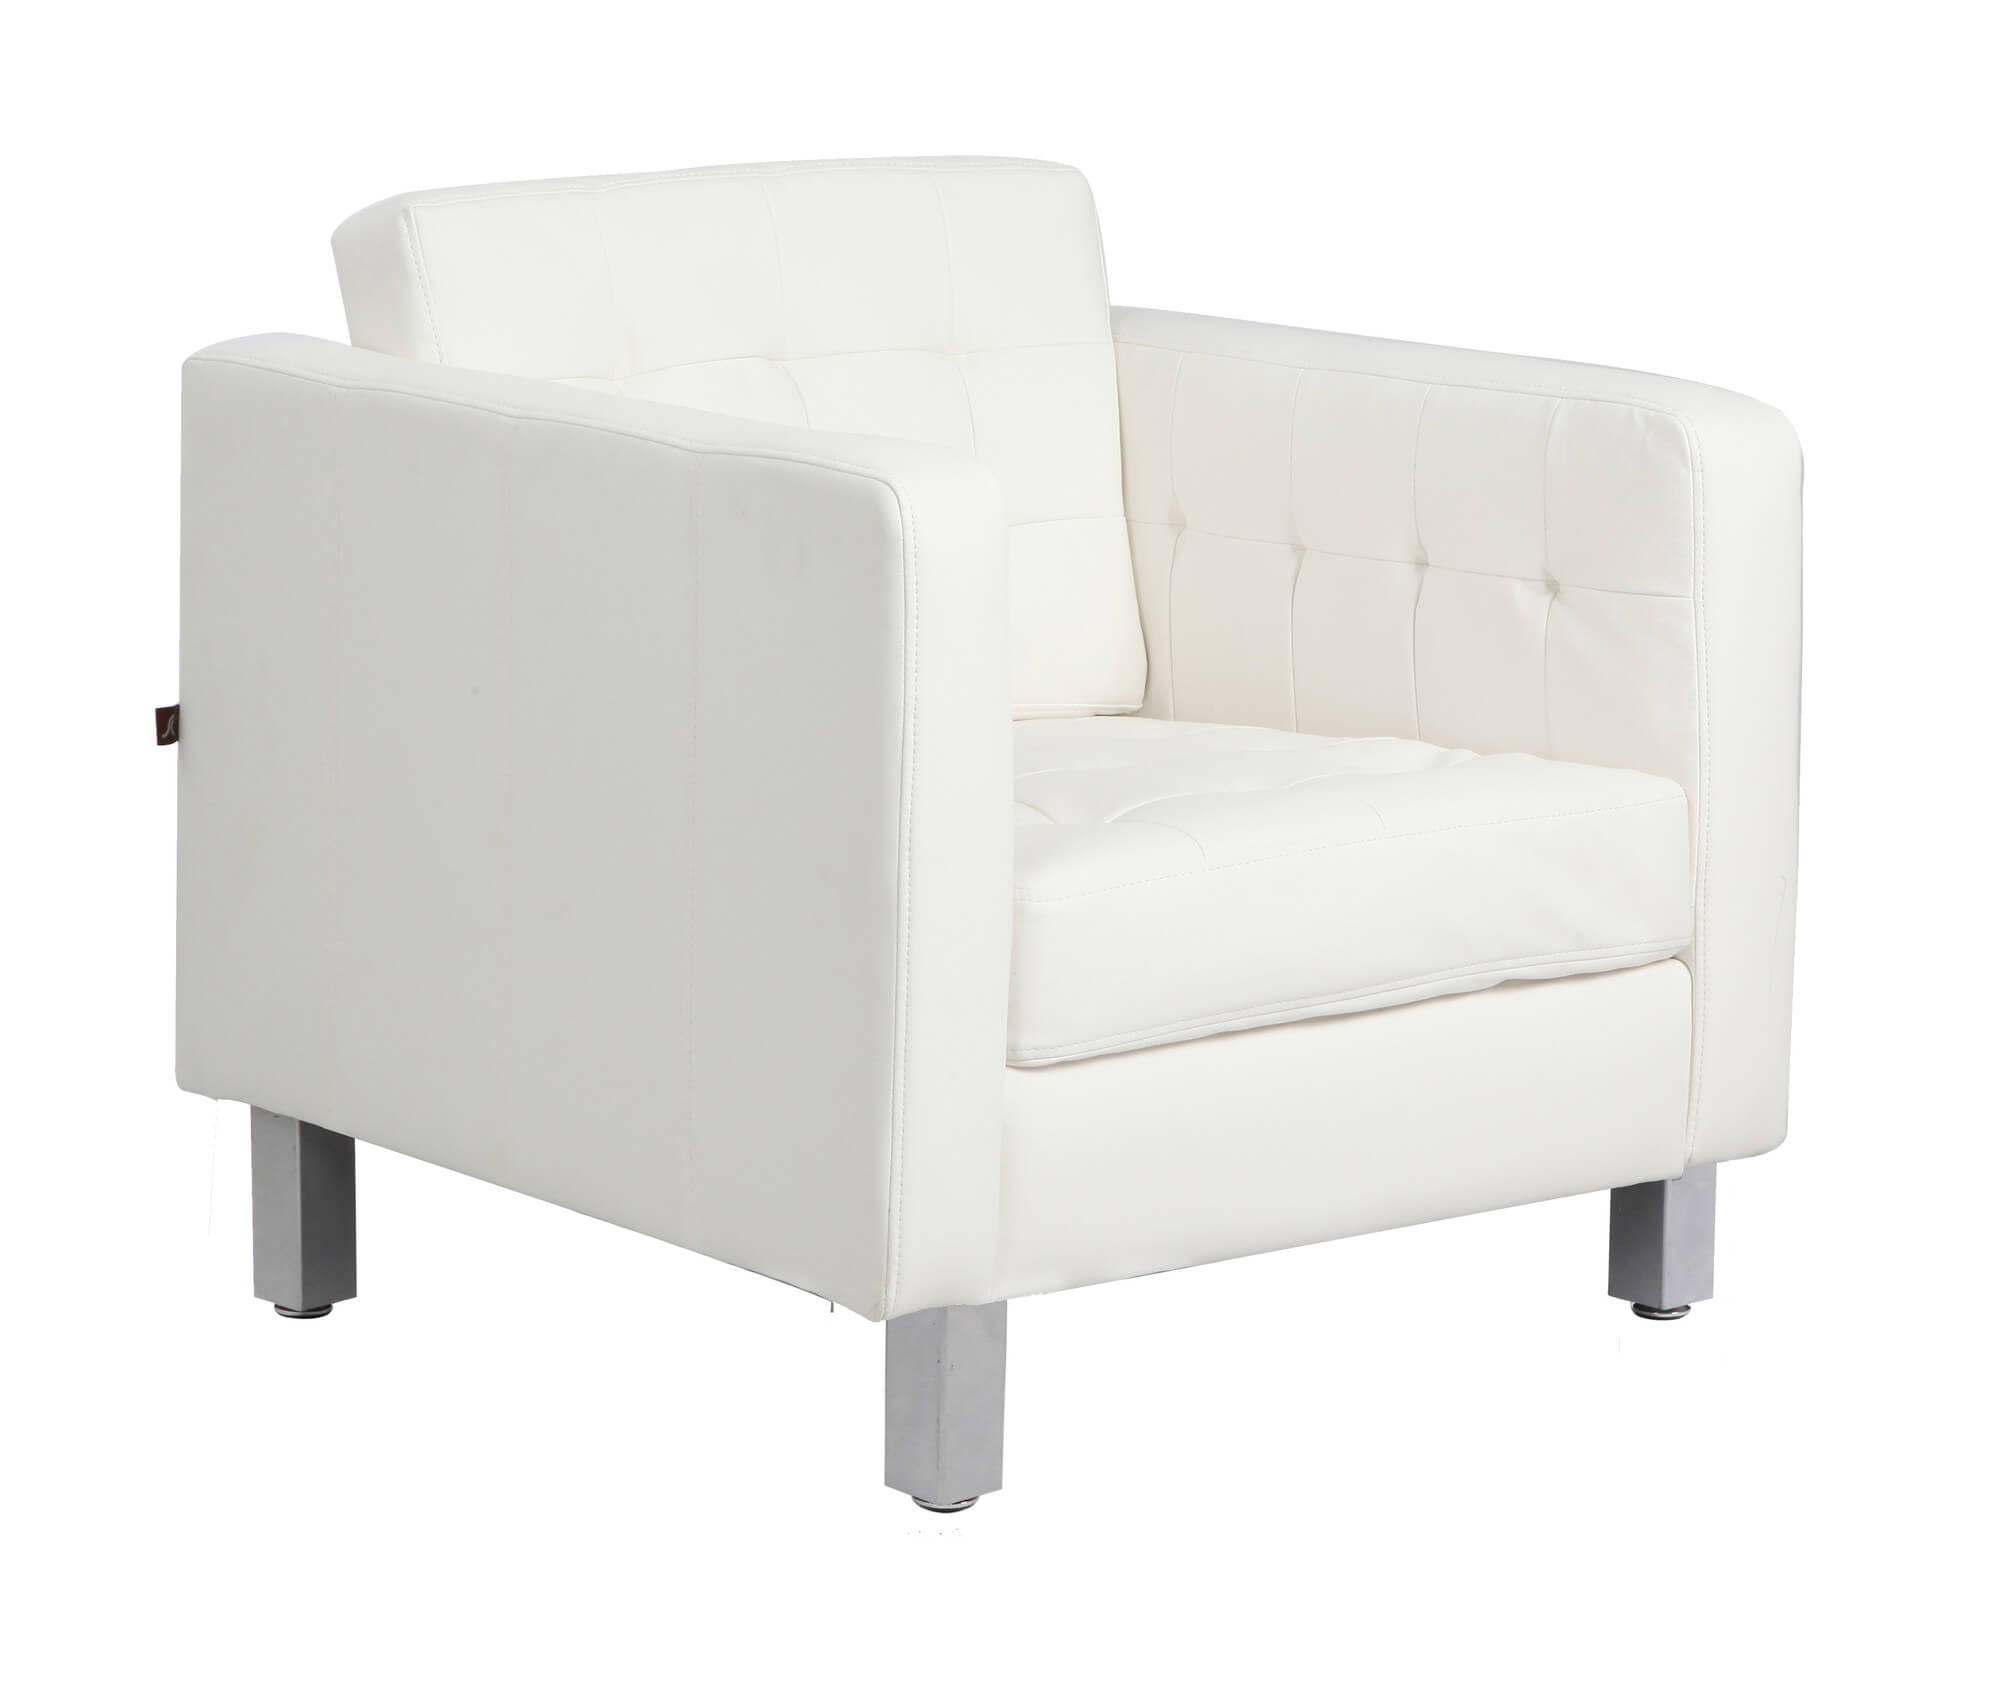 Image of: 37 White Modern Accent Chairs For The Living Room